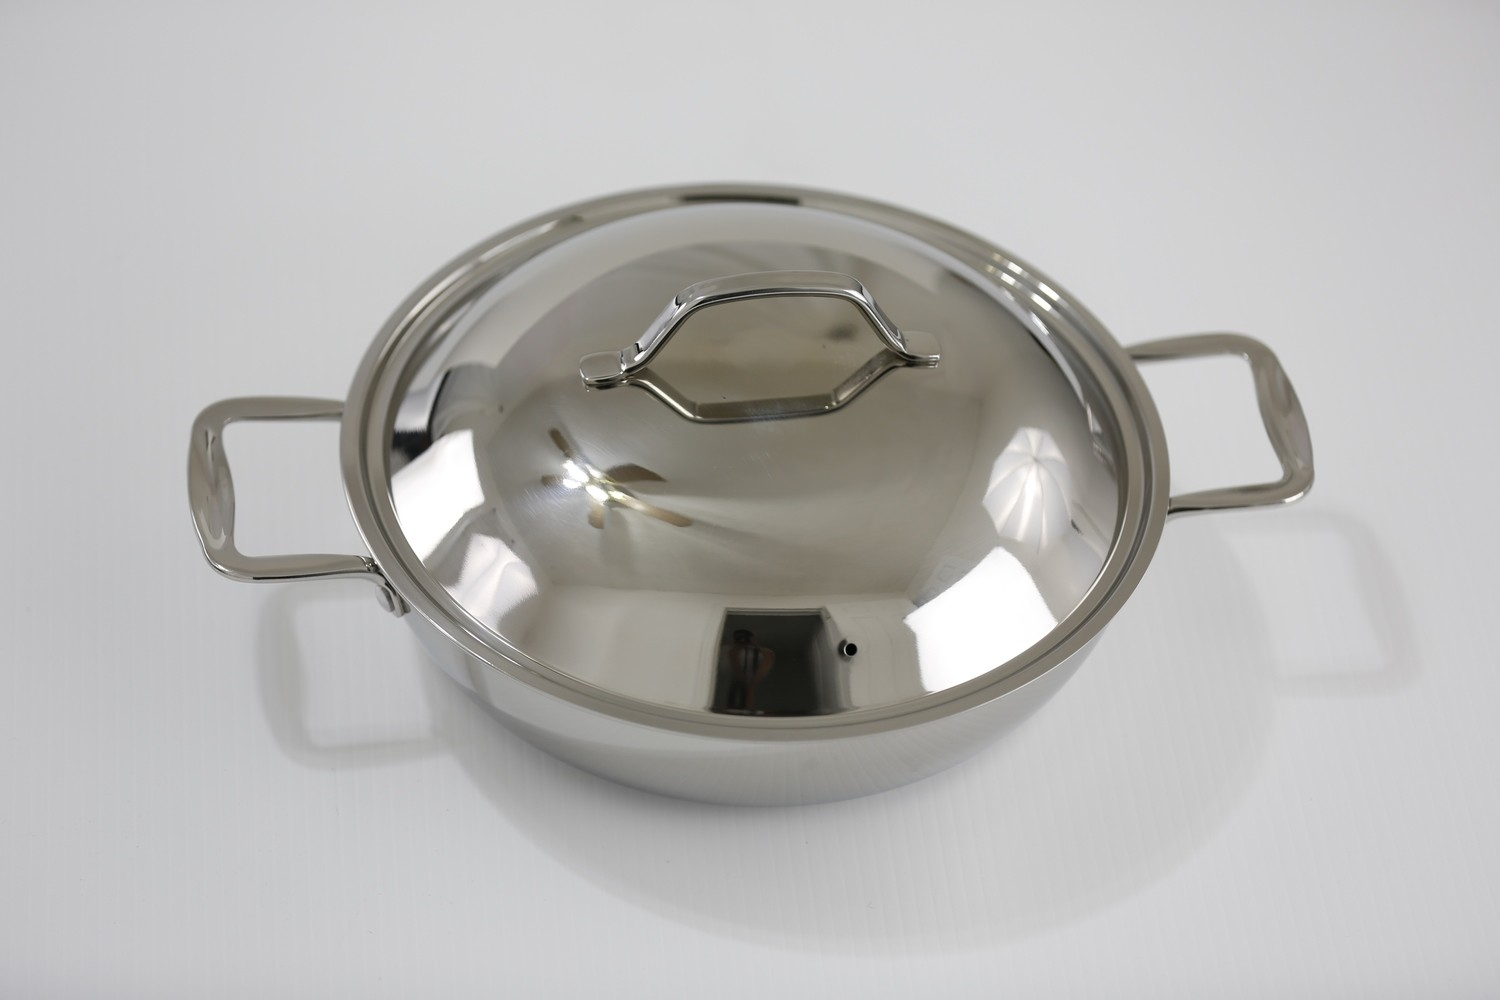 """SS1-10.24"""" Stainless Steel Everyday Pan with Dome Cover"""